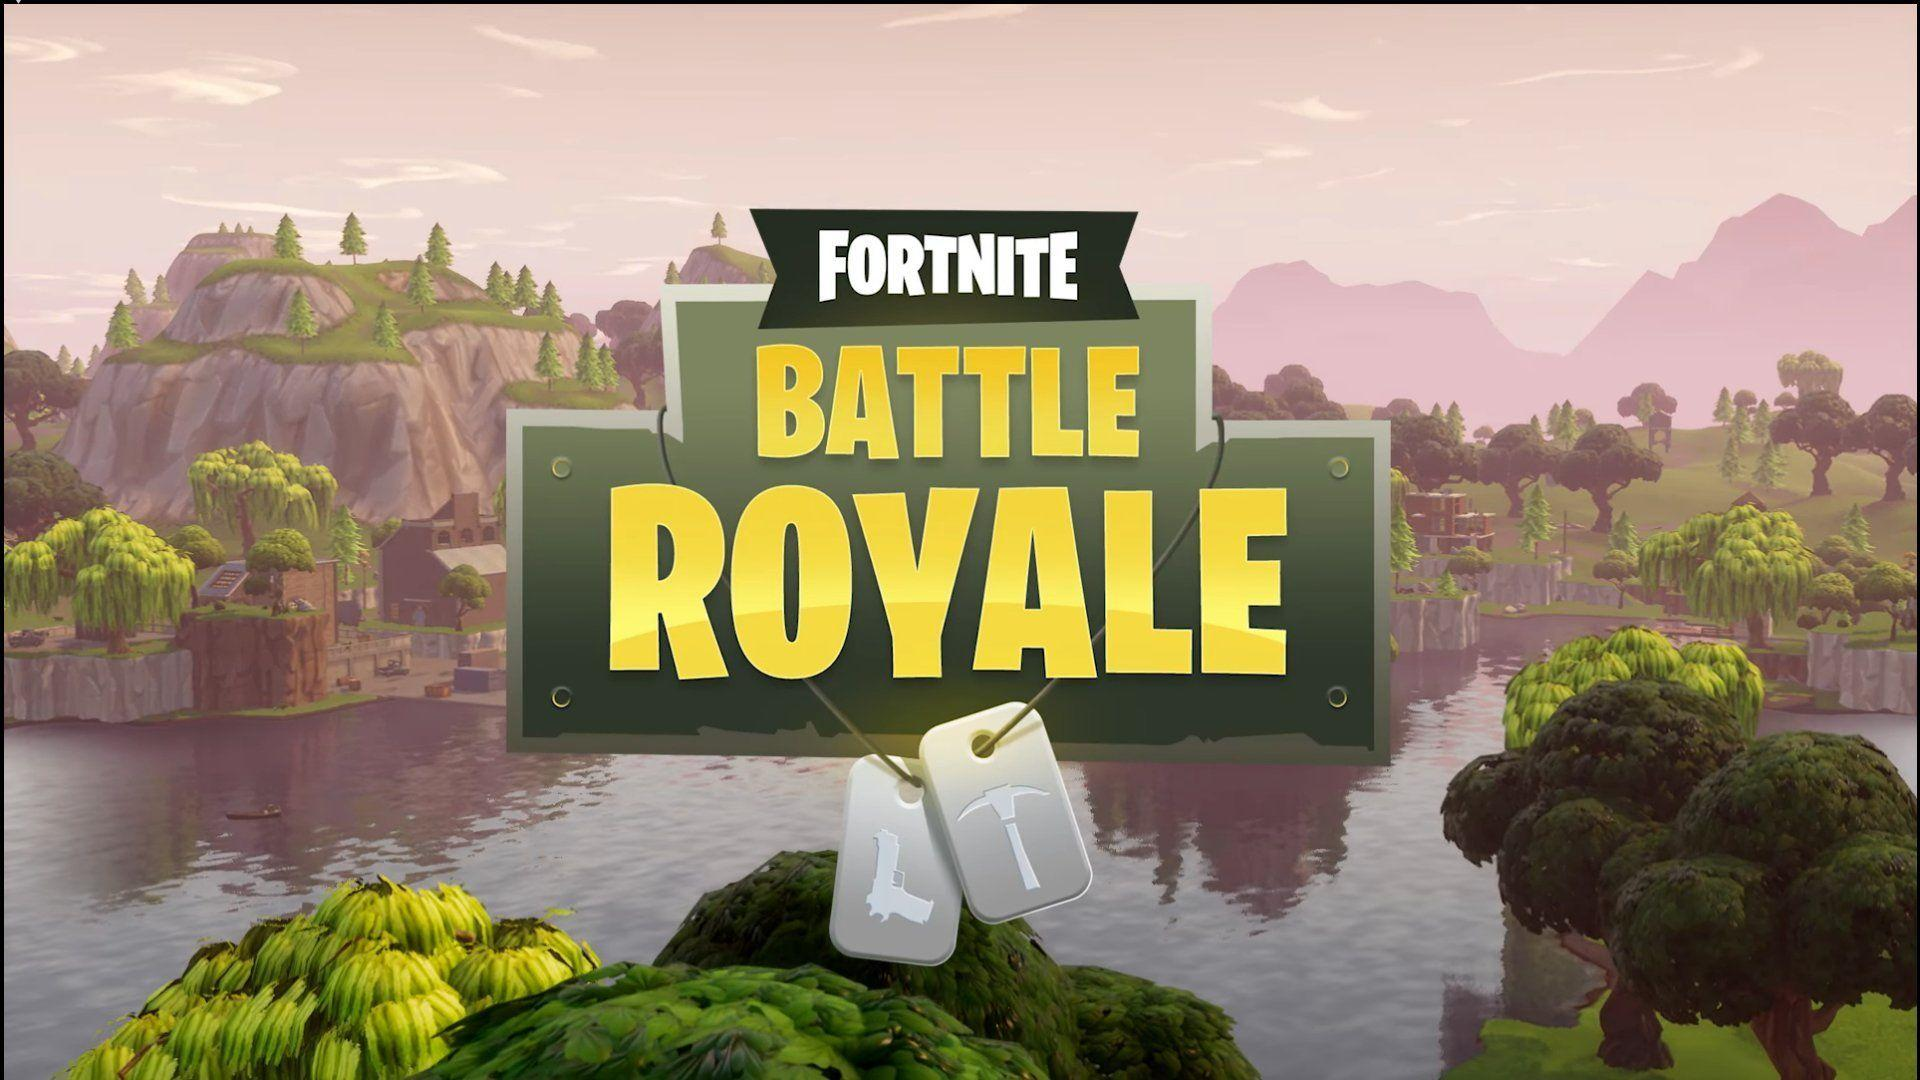 Fortnite: Battle Royale Wallpapers